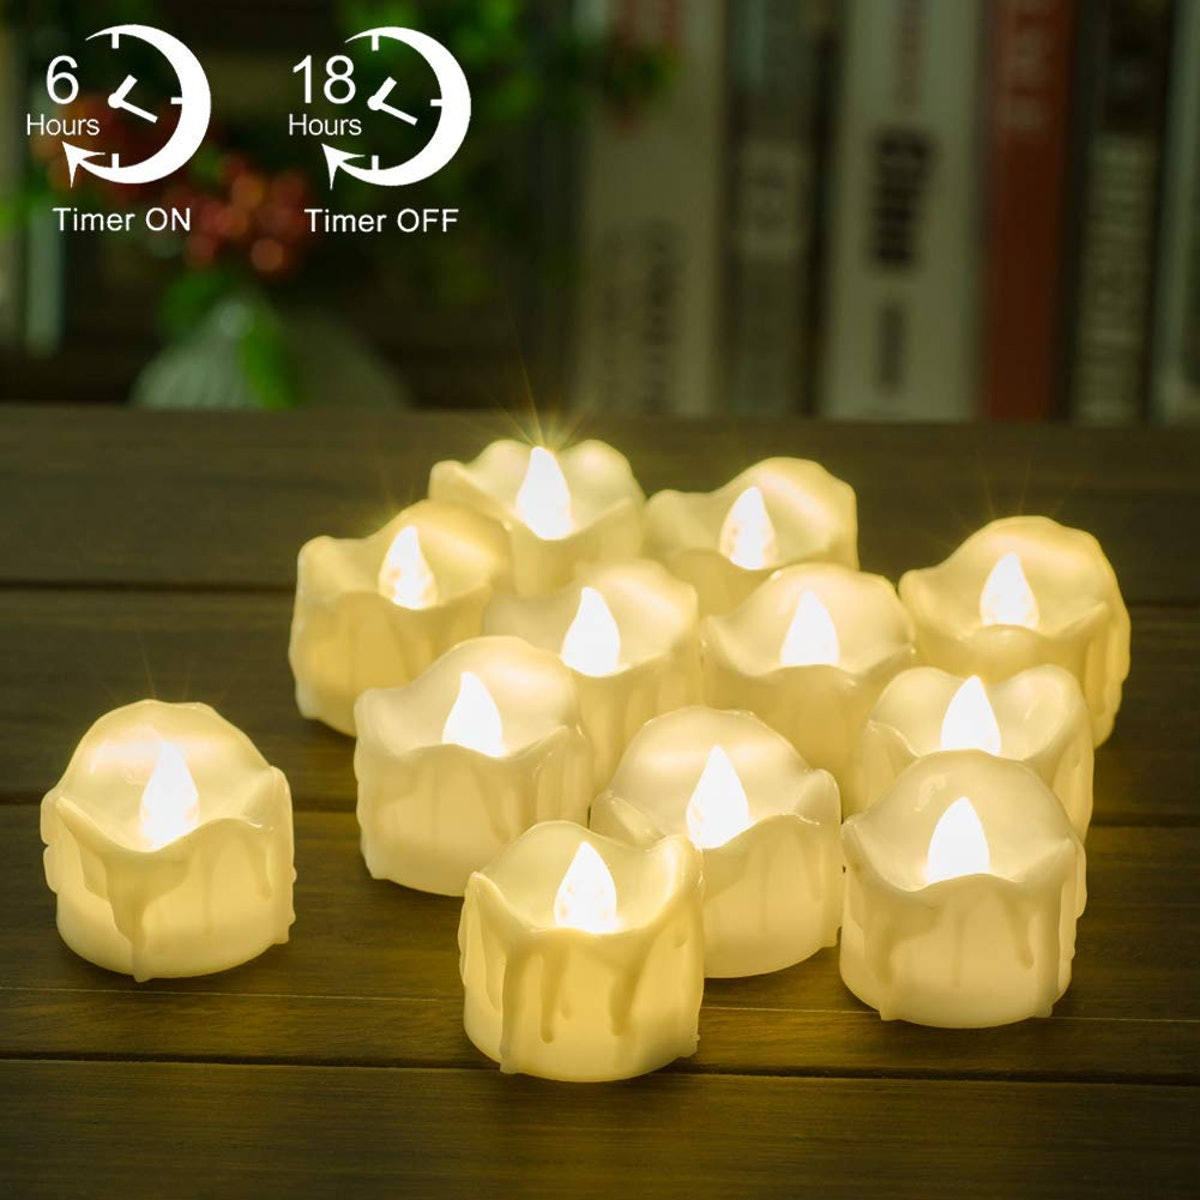 PChero Flameless Timer Candles (12-Pack)